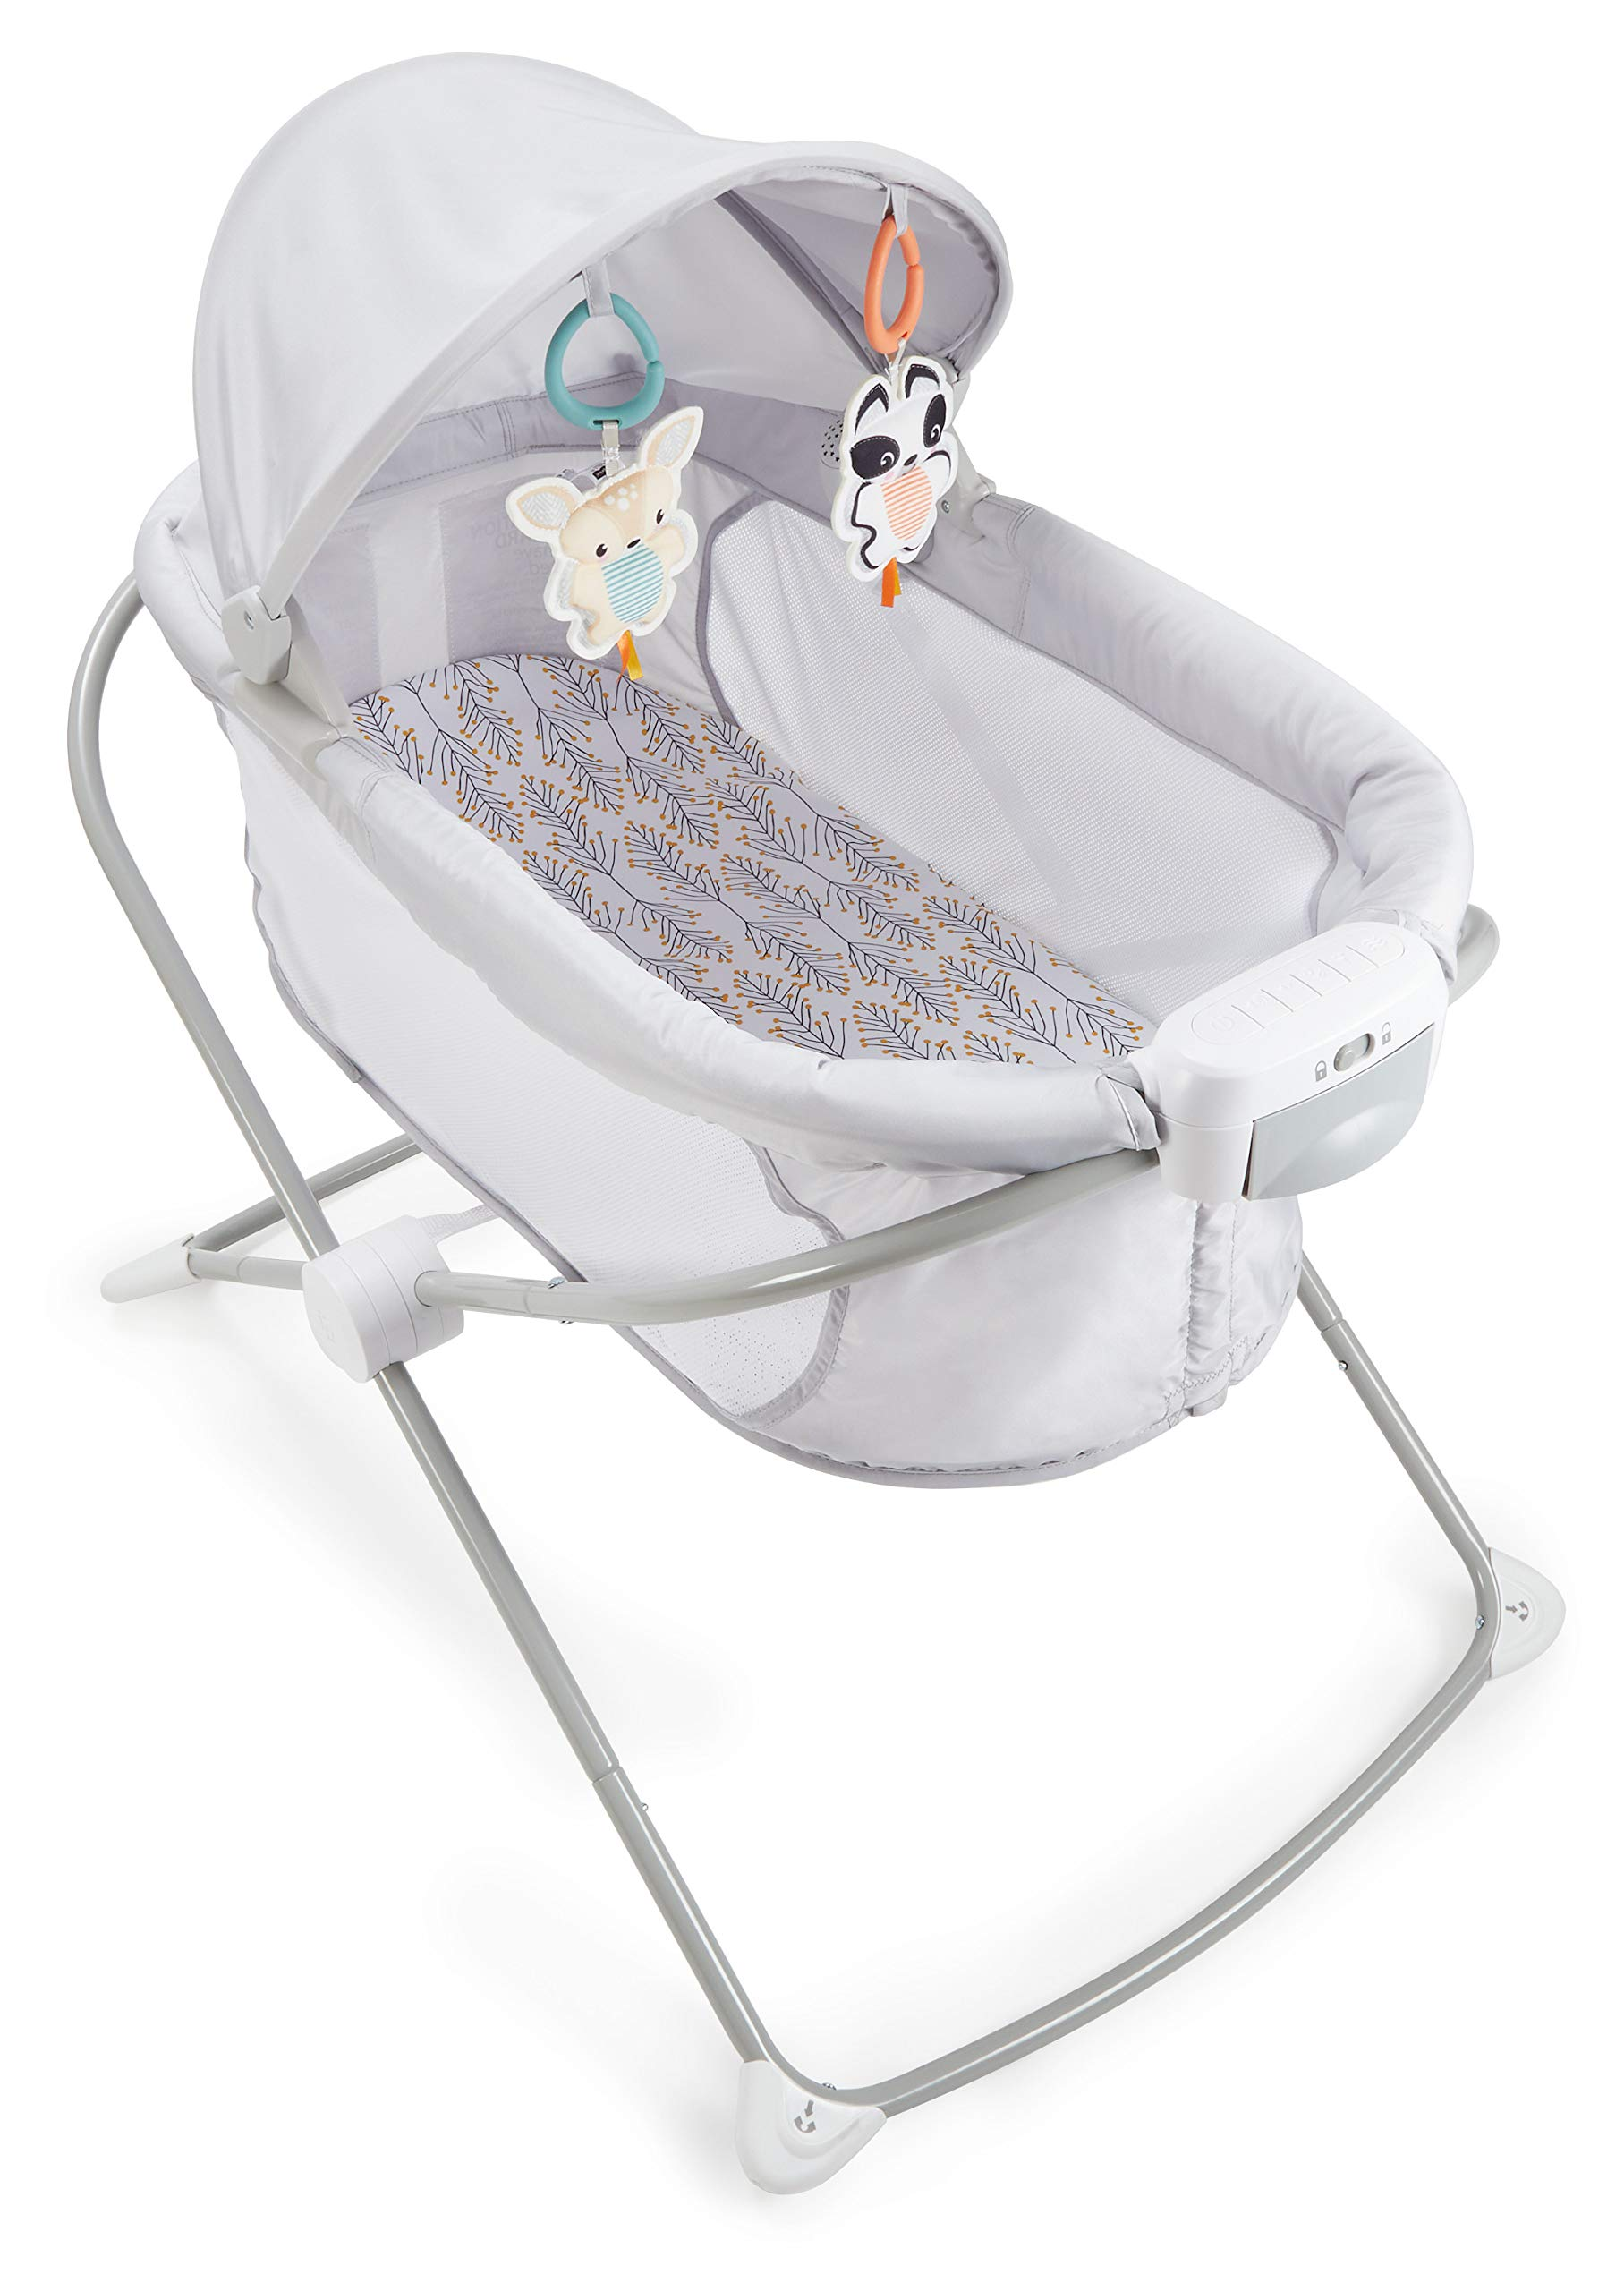 Fisher-Price Soothing View Projection Bassinet – Fawning Leaves, Folding Portable Baby Cradle with Projection Light for Newborns and Infants